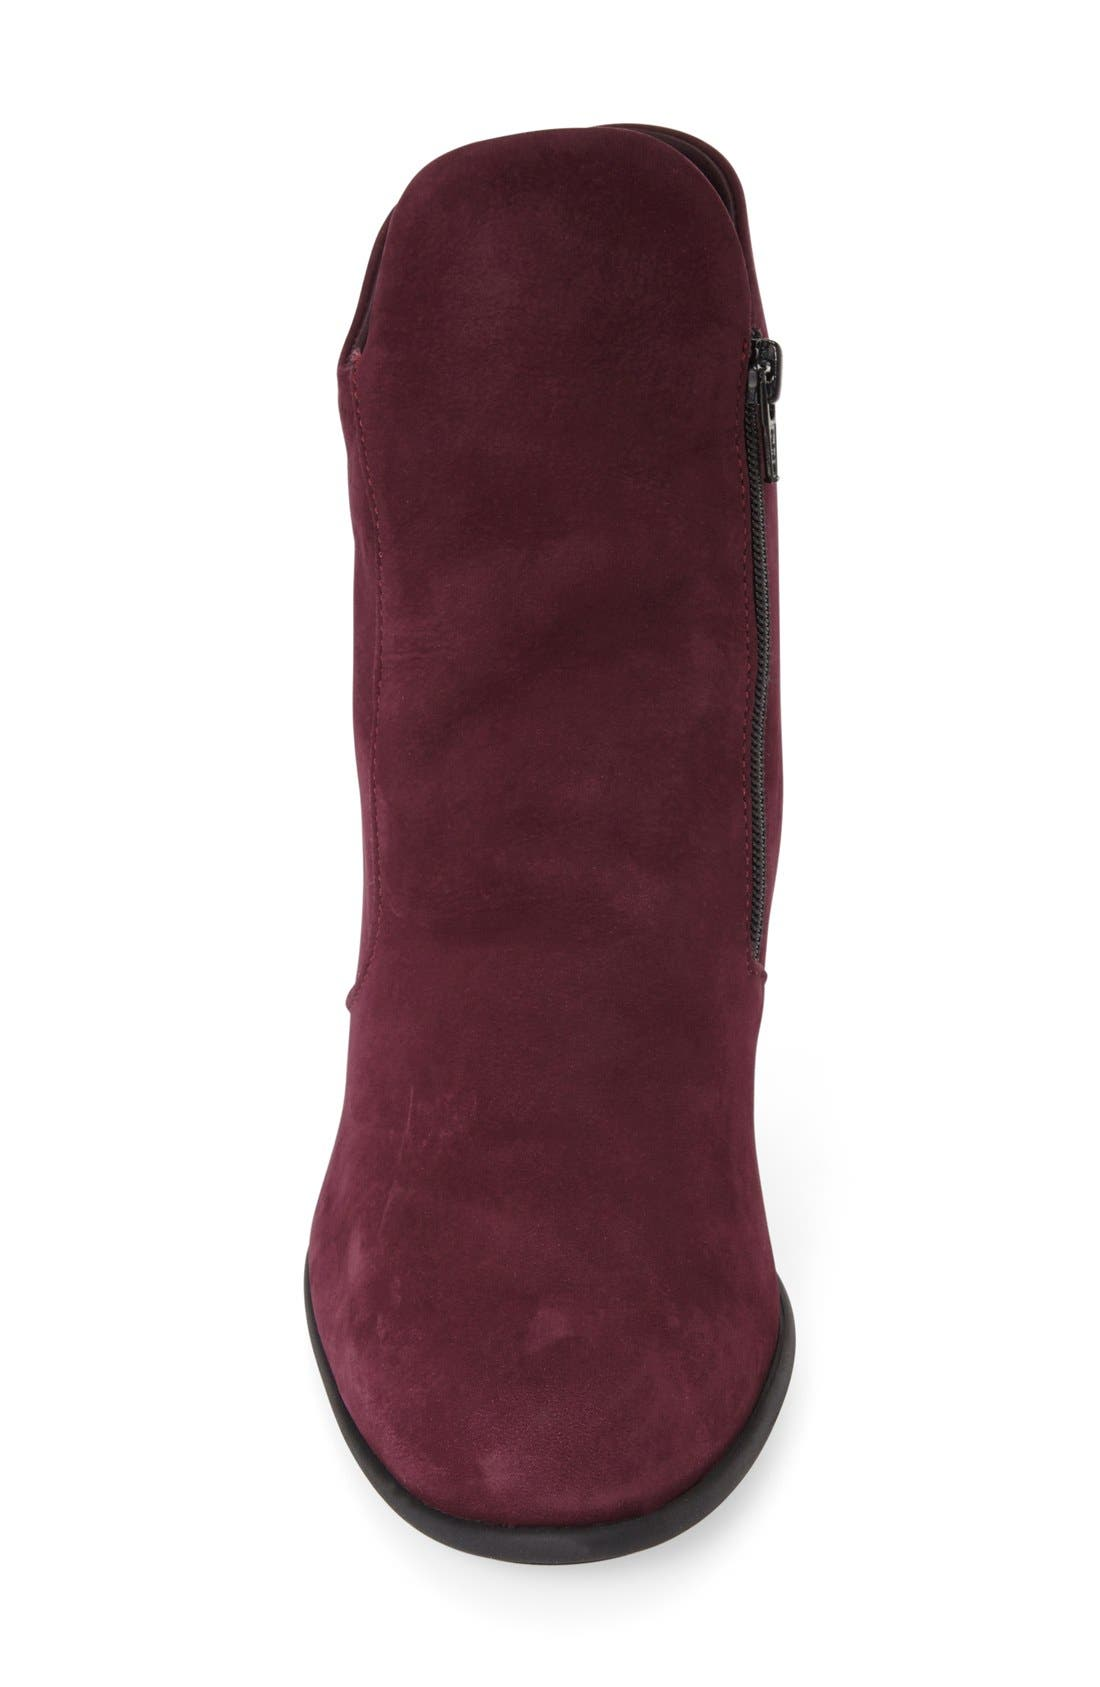 'Musaca' Boot,                             Alternate thumbnail 3, color,                             Berry Nubuck Leather